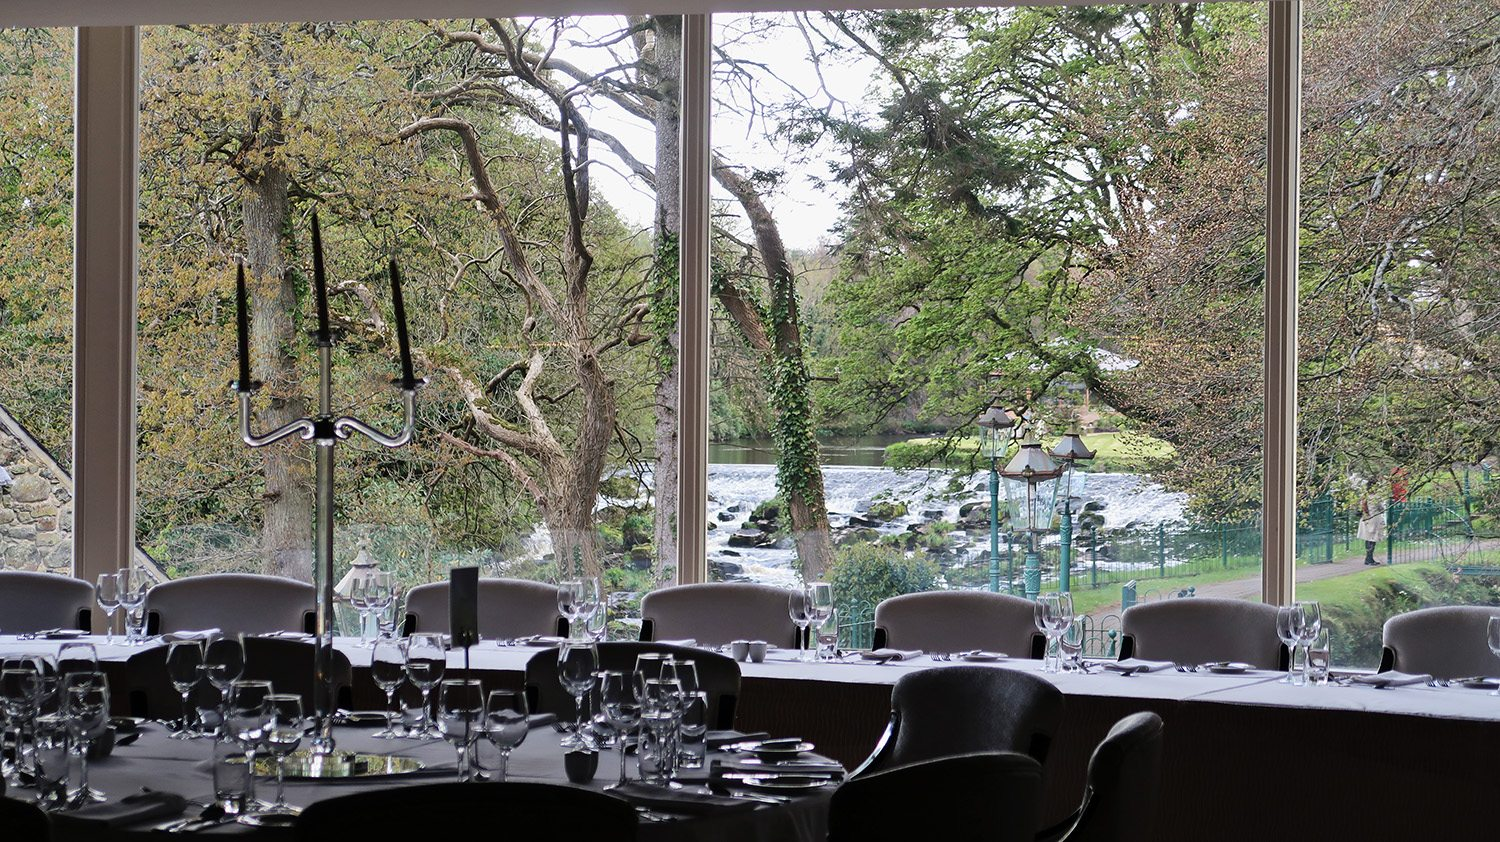 River view from inside the restaurant